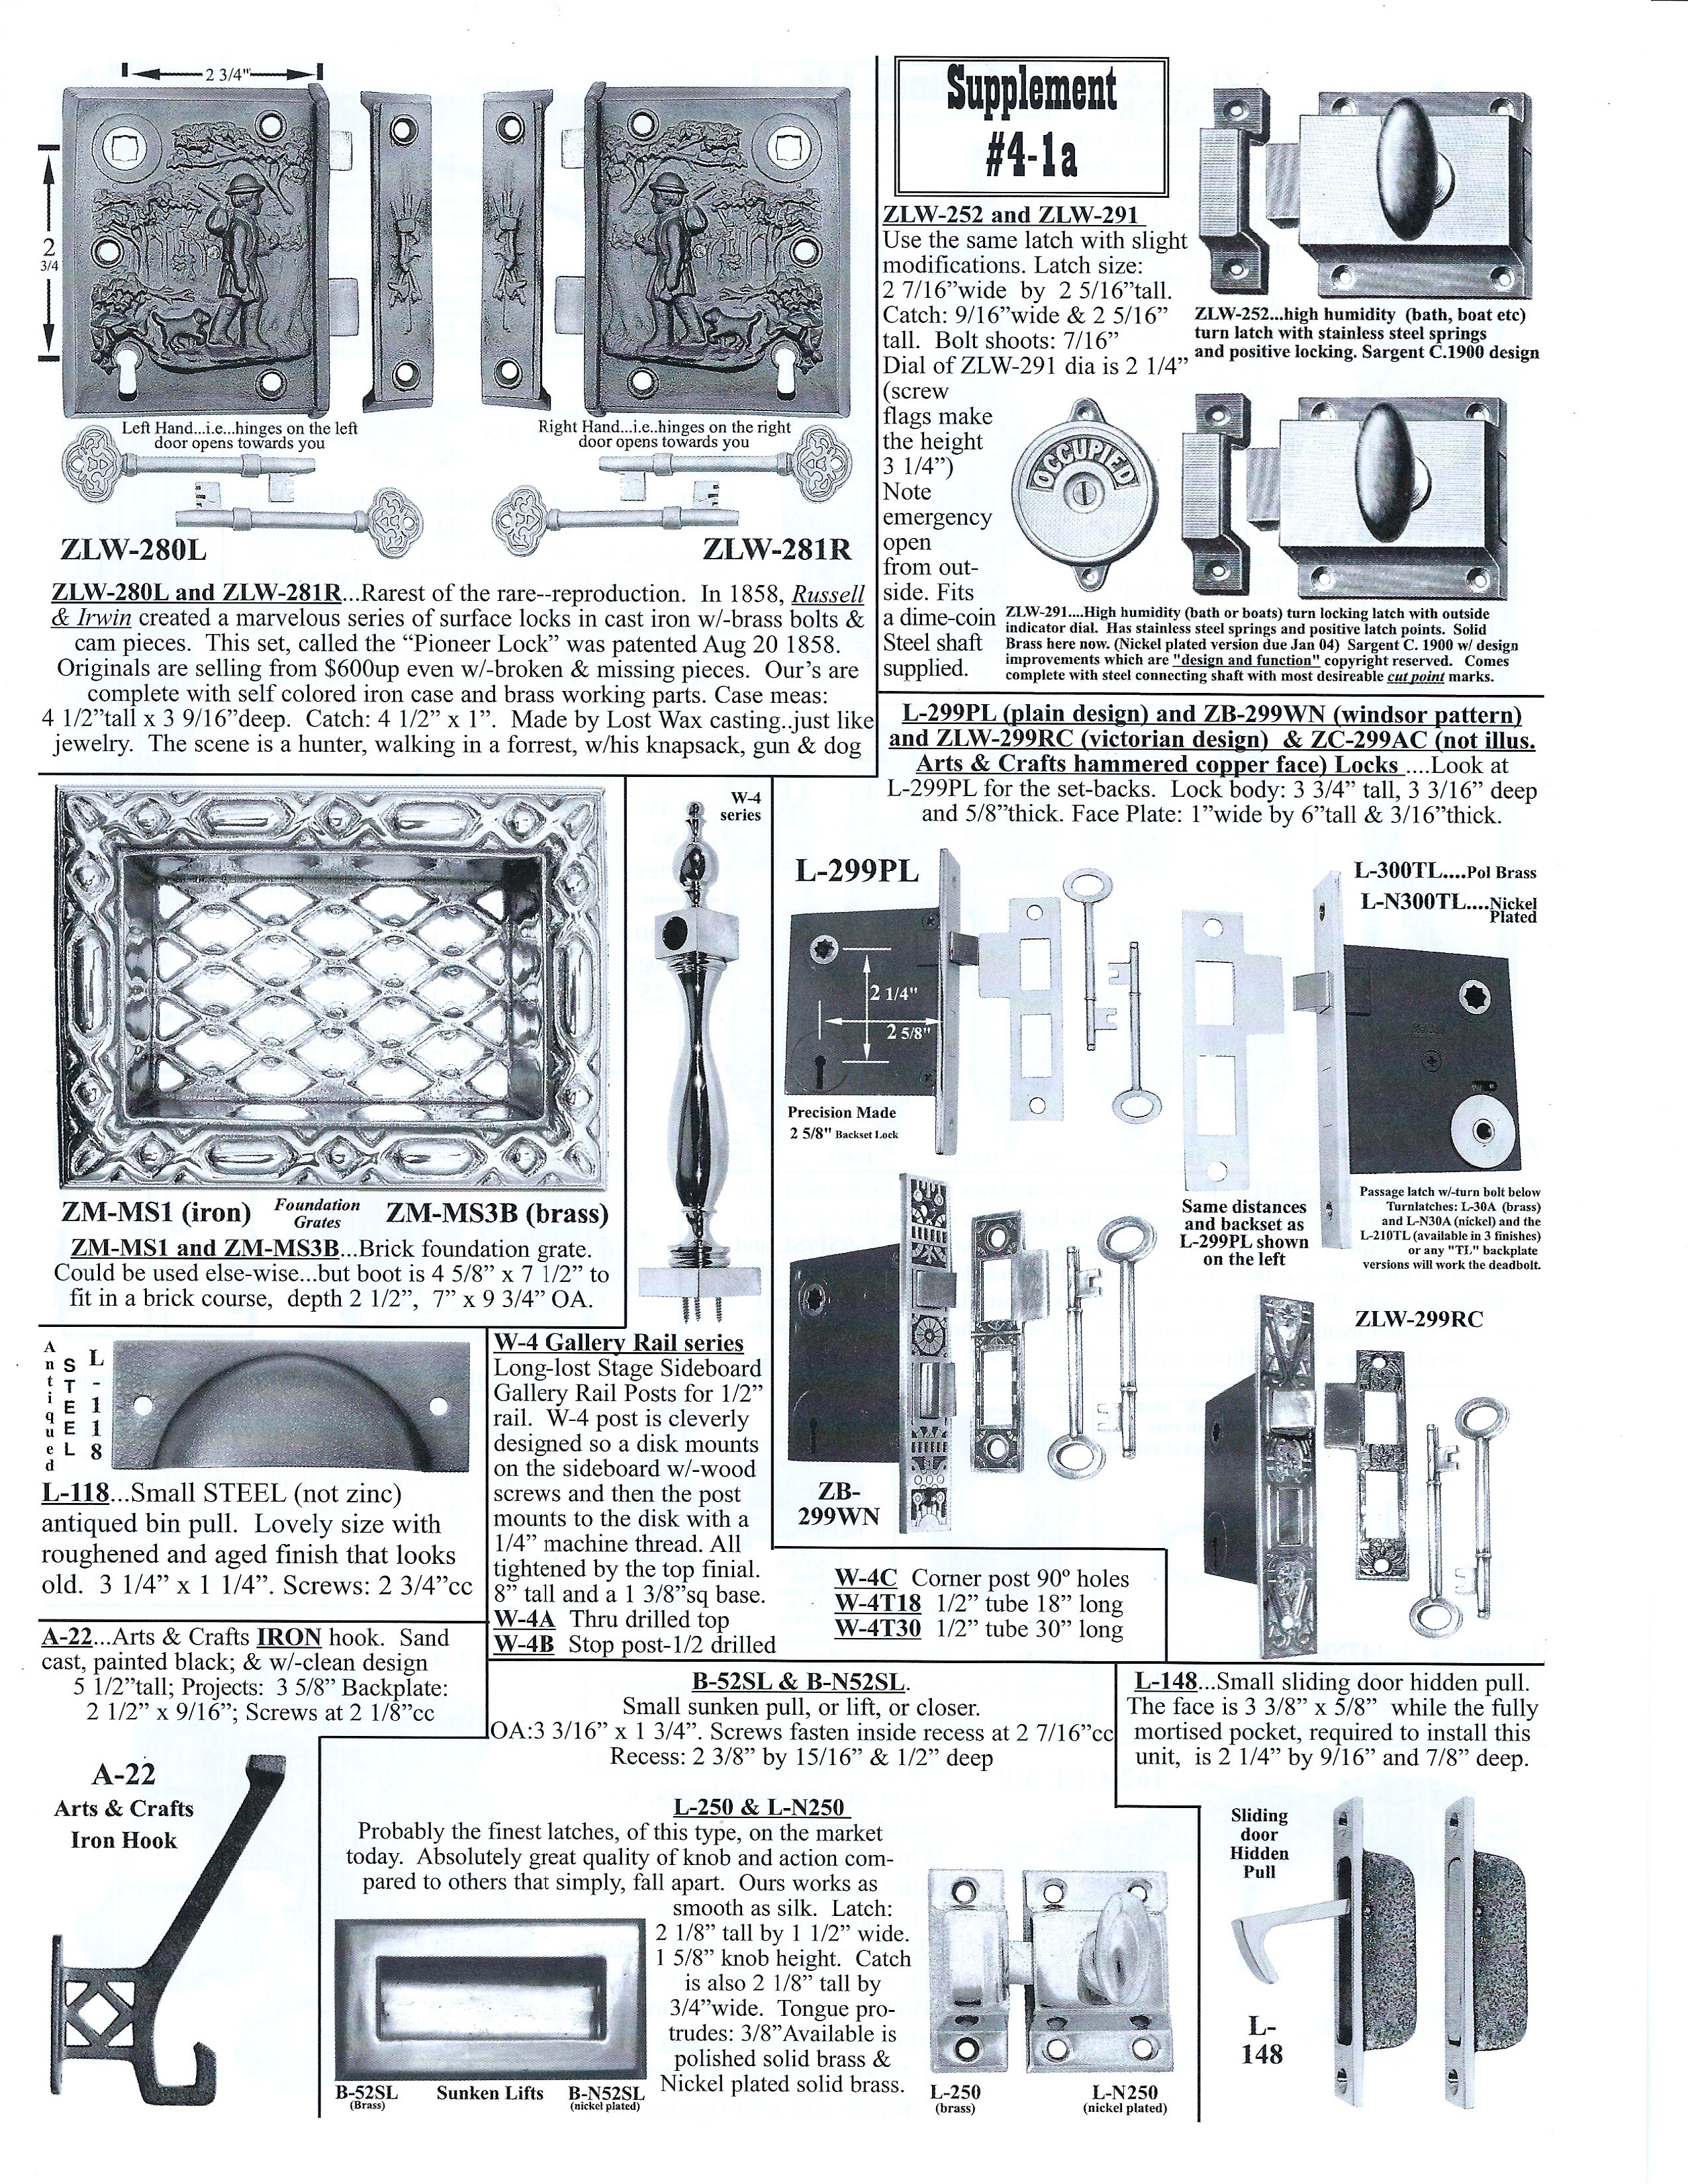 Catalog page 51